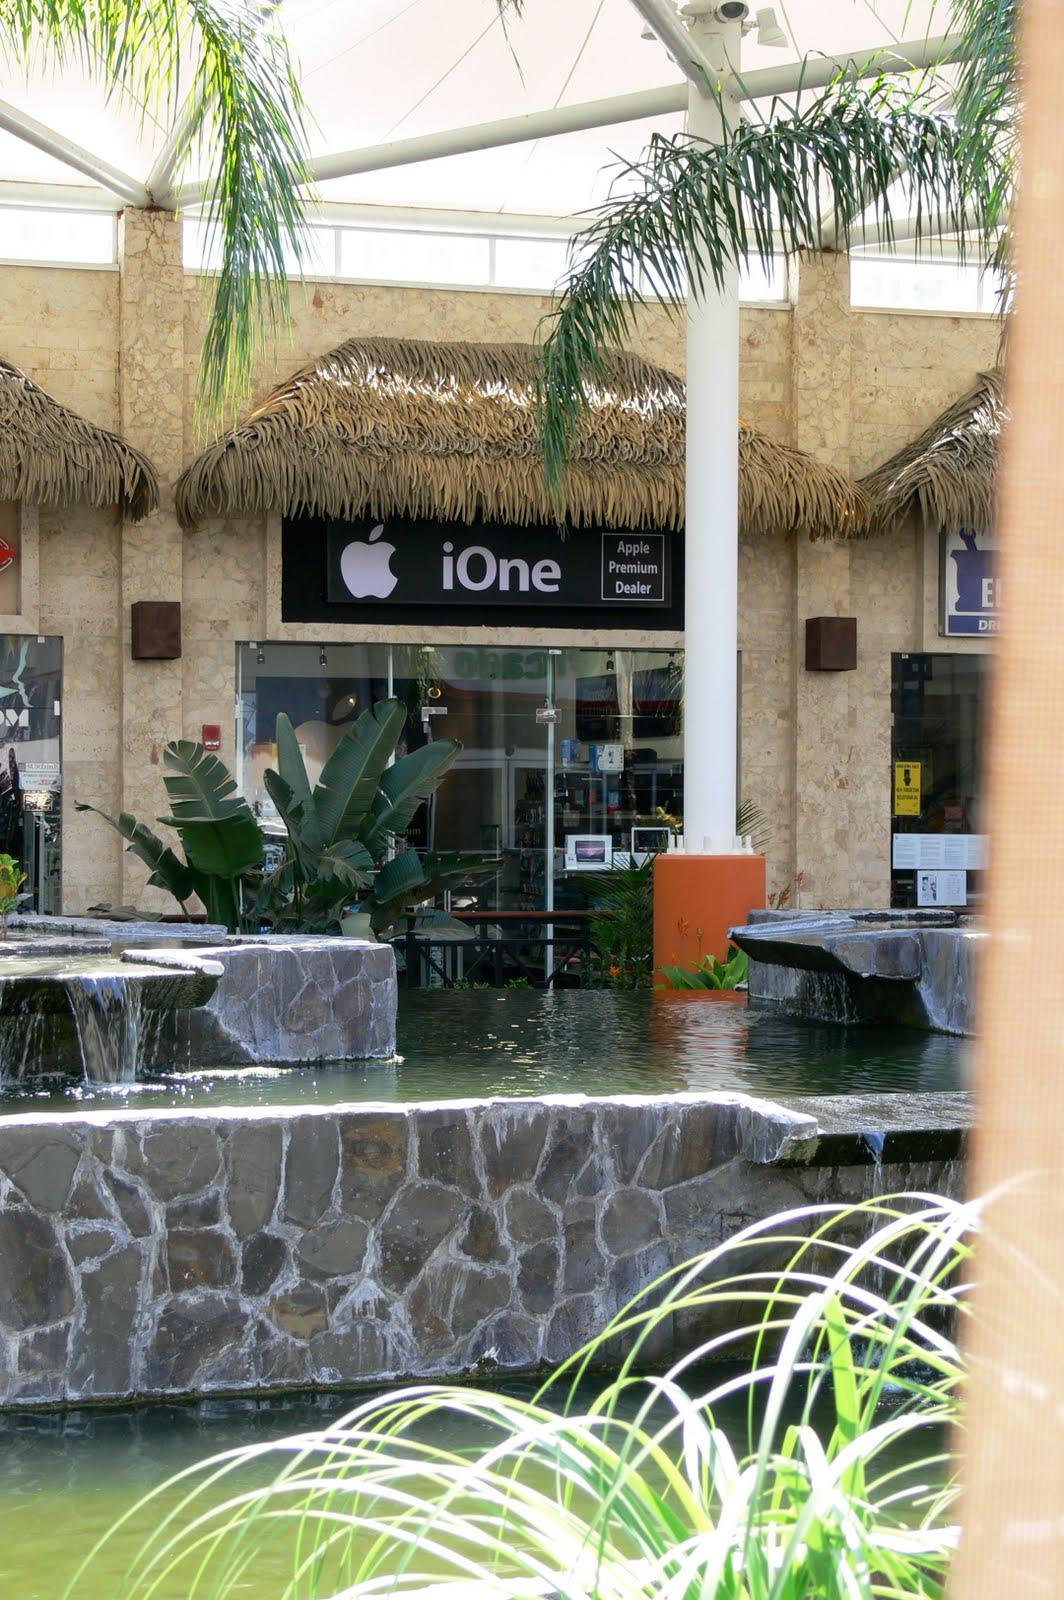 Although Tamarindo Is A Costa Rican Beach Resort, The Garden Plaza Shopping  Center Now Has An Apple Computer Dealer. It Is Not An Apple Store Like You  Would ...